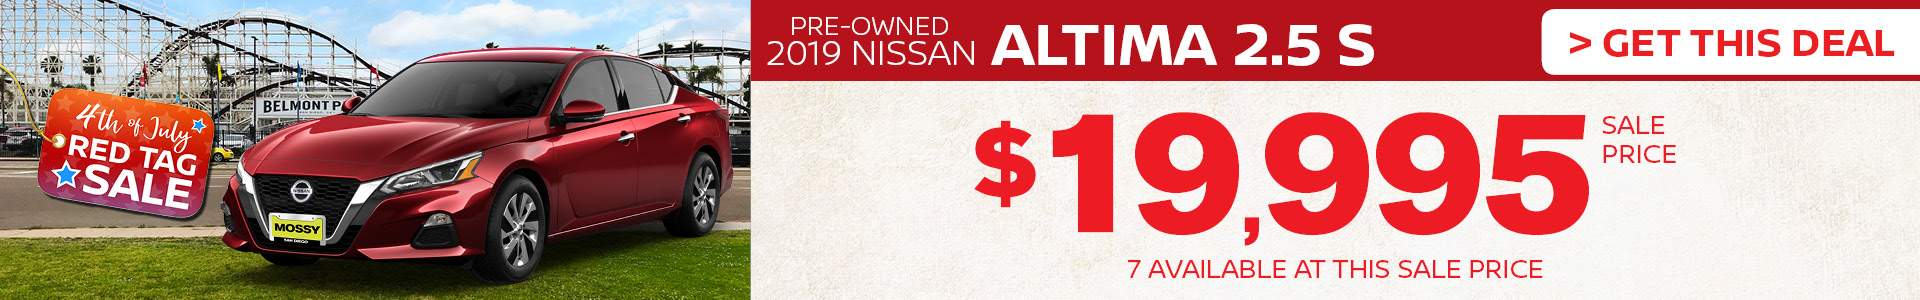 Mossy Nissan - PreOwned Altima Summer Savings